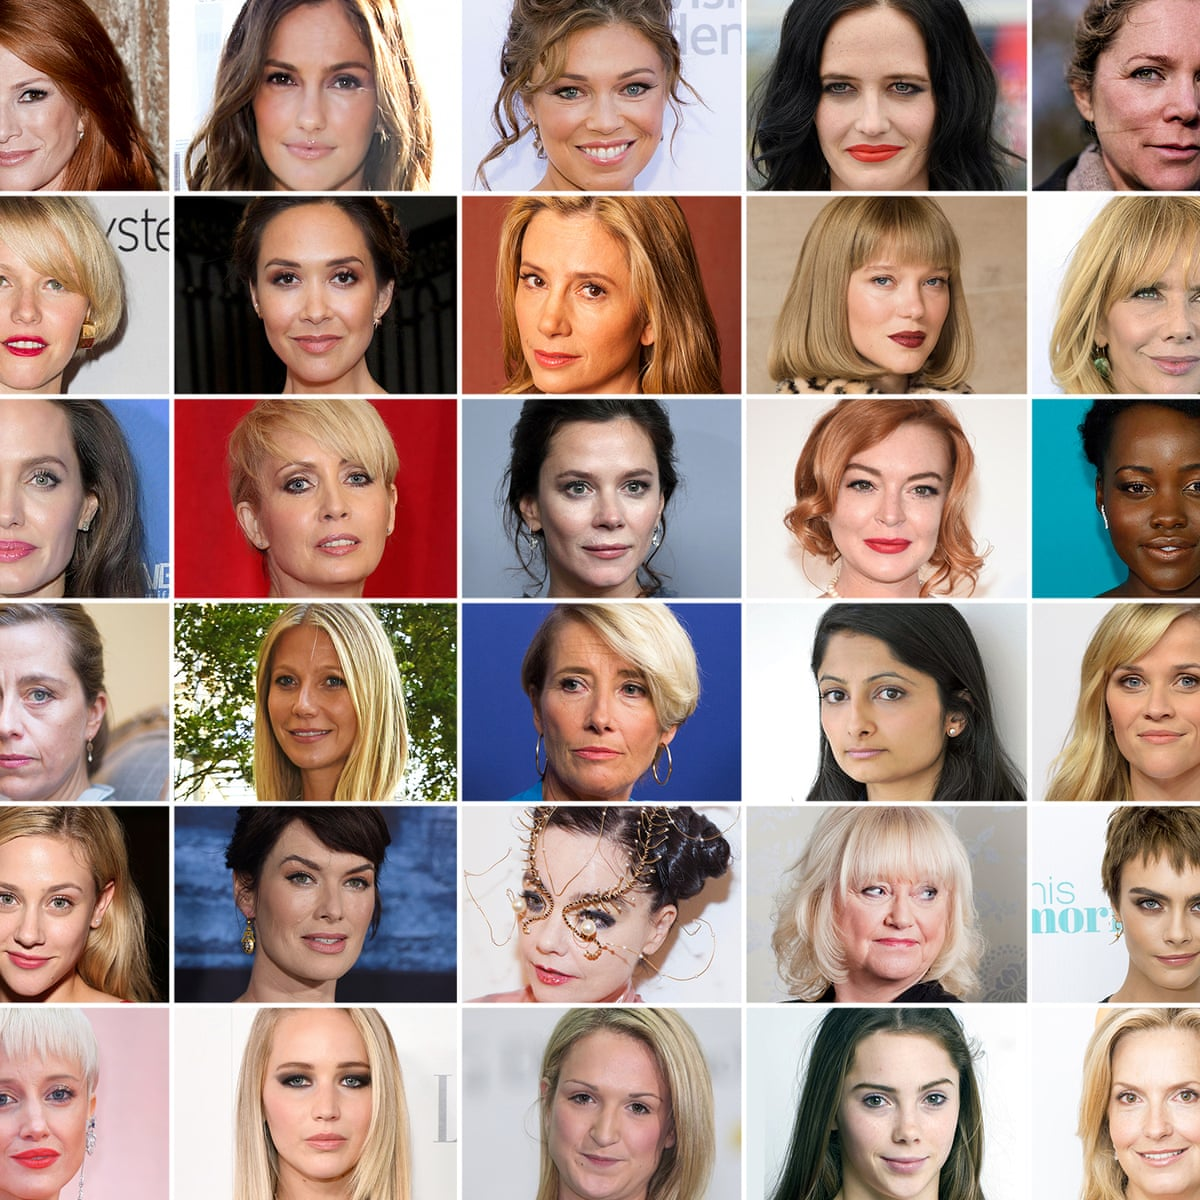 How Harvey Weinstein S Accusers Gave Women Worldwide A Voice Rape And Sexual Assault The Guardian